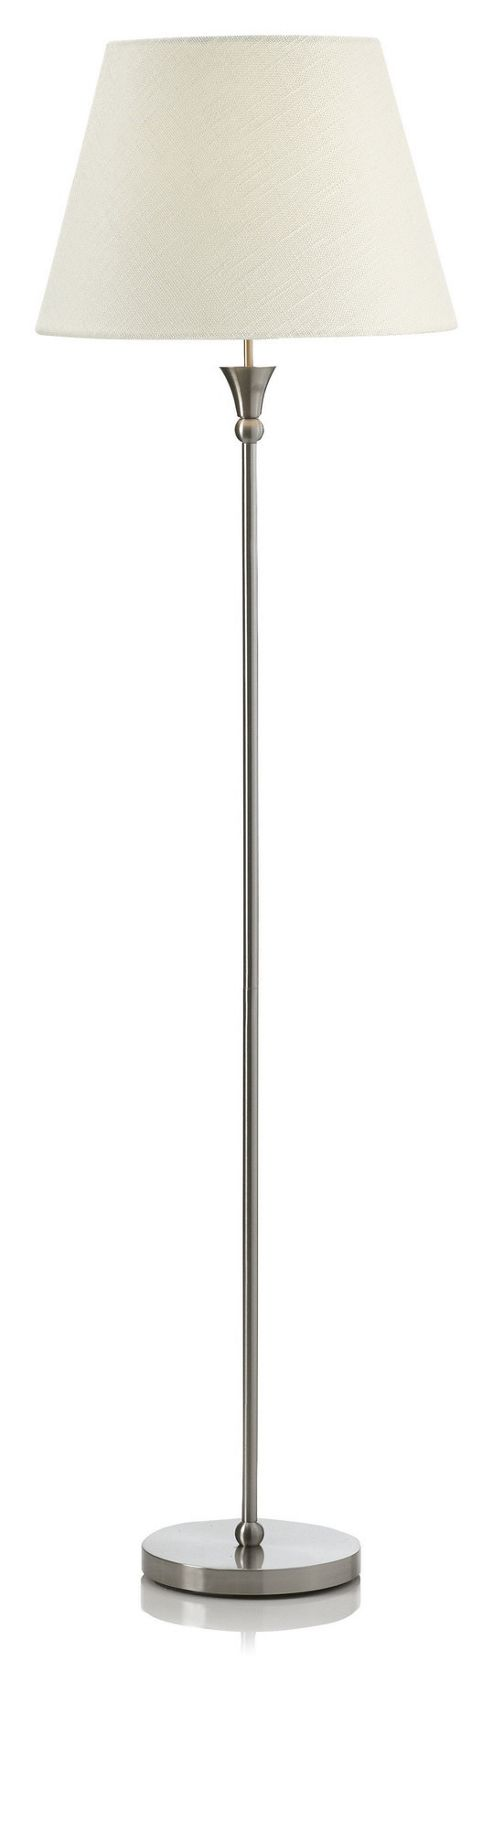 Mark Slojd Trondheim 1 Light Floor Lamp